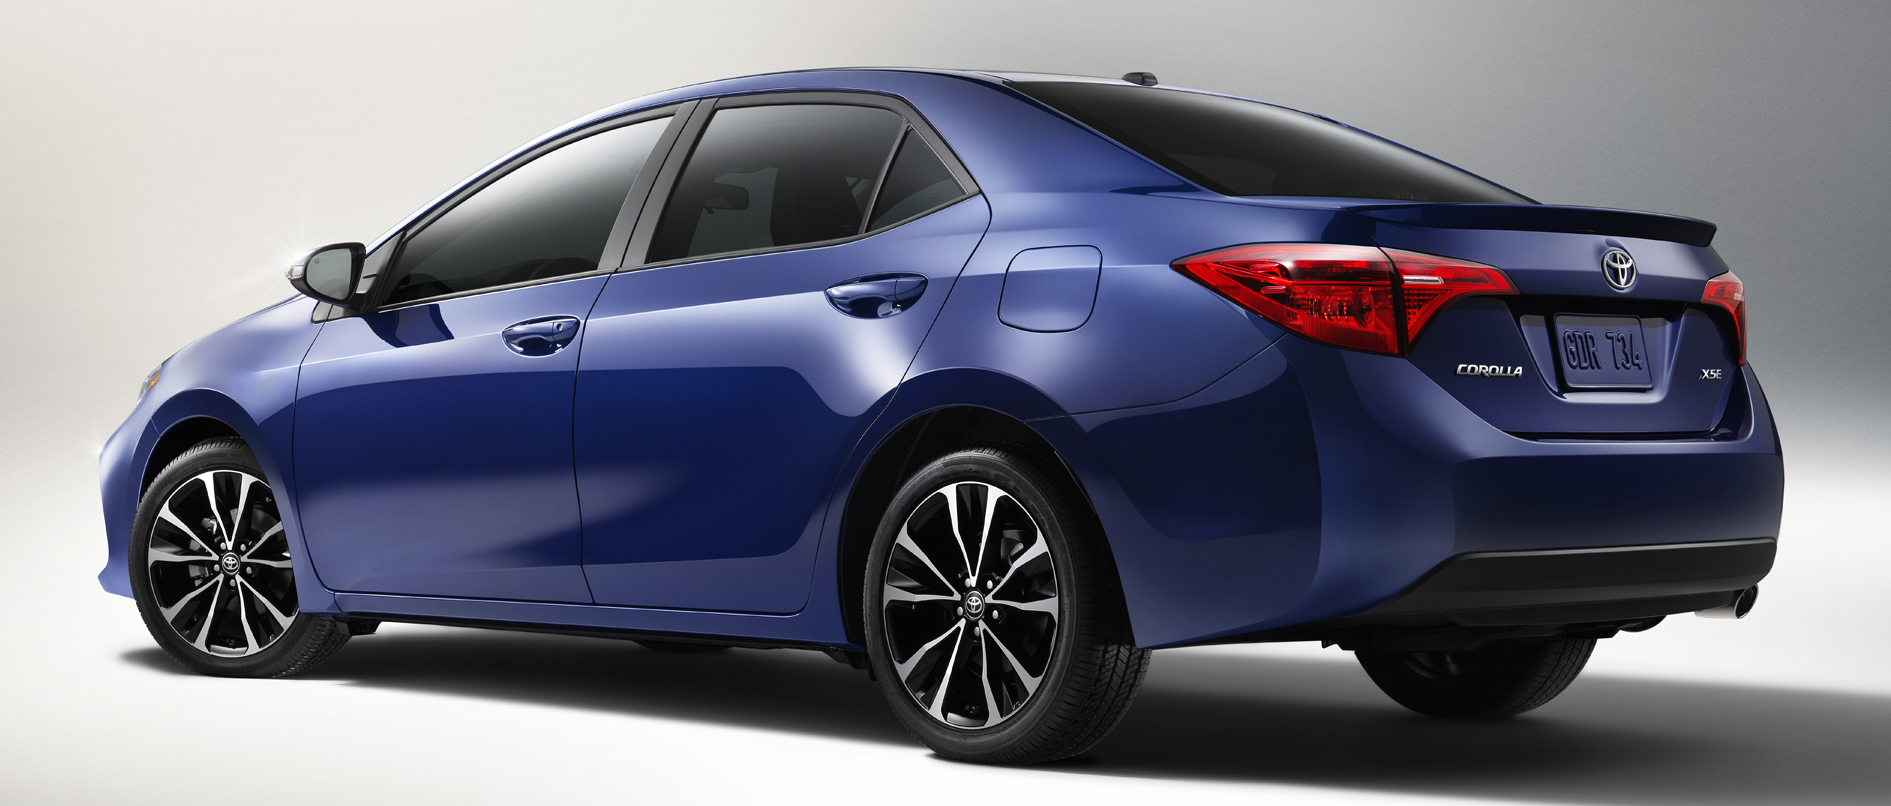 2017 toyota corolla facelift for north america revealed plus a 50th anniversary special edition. Black Bedroom Furniture Sets. Home Design Ideas